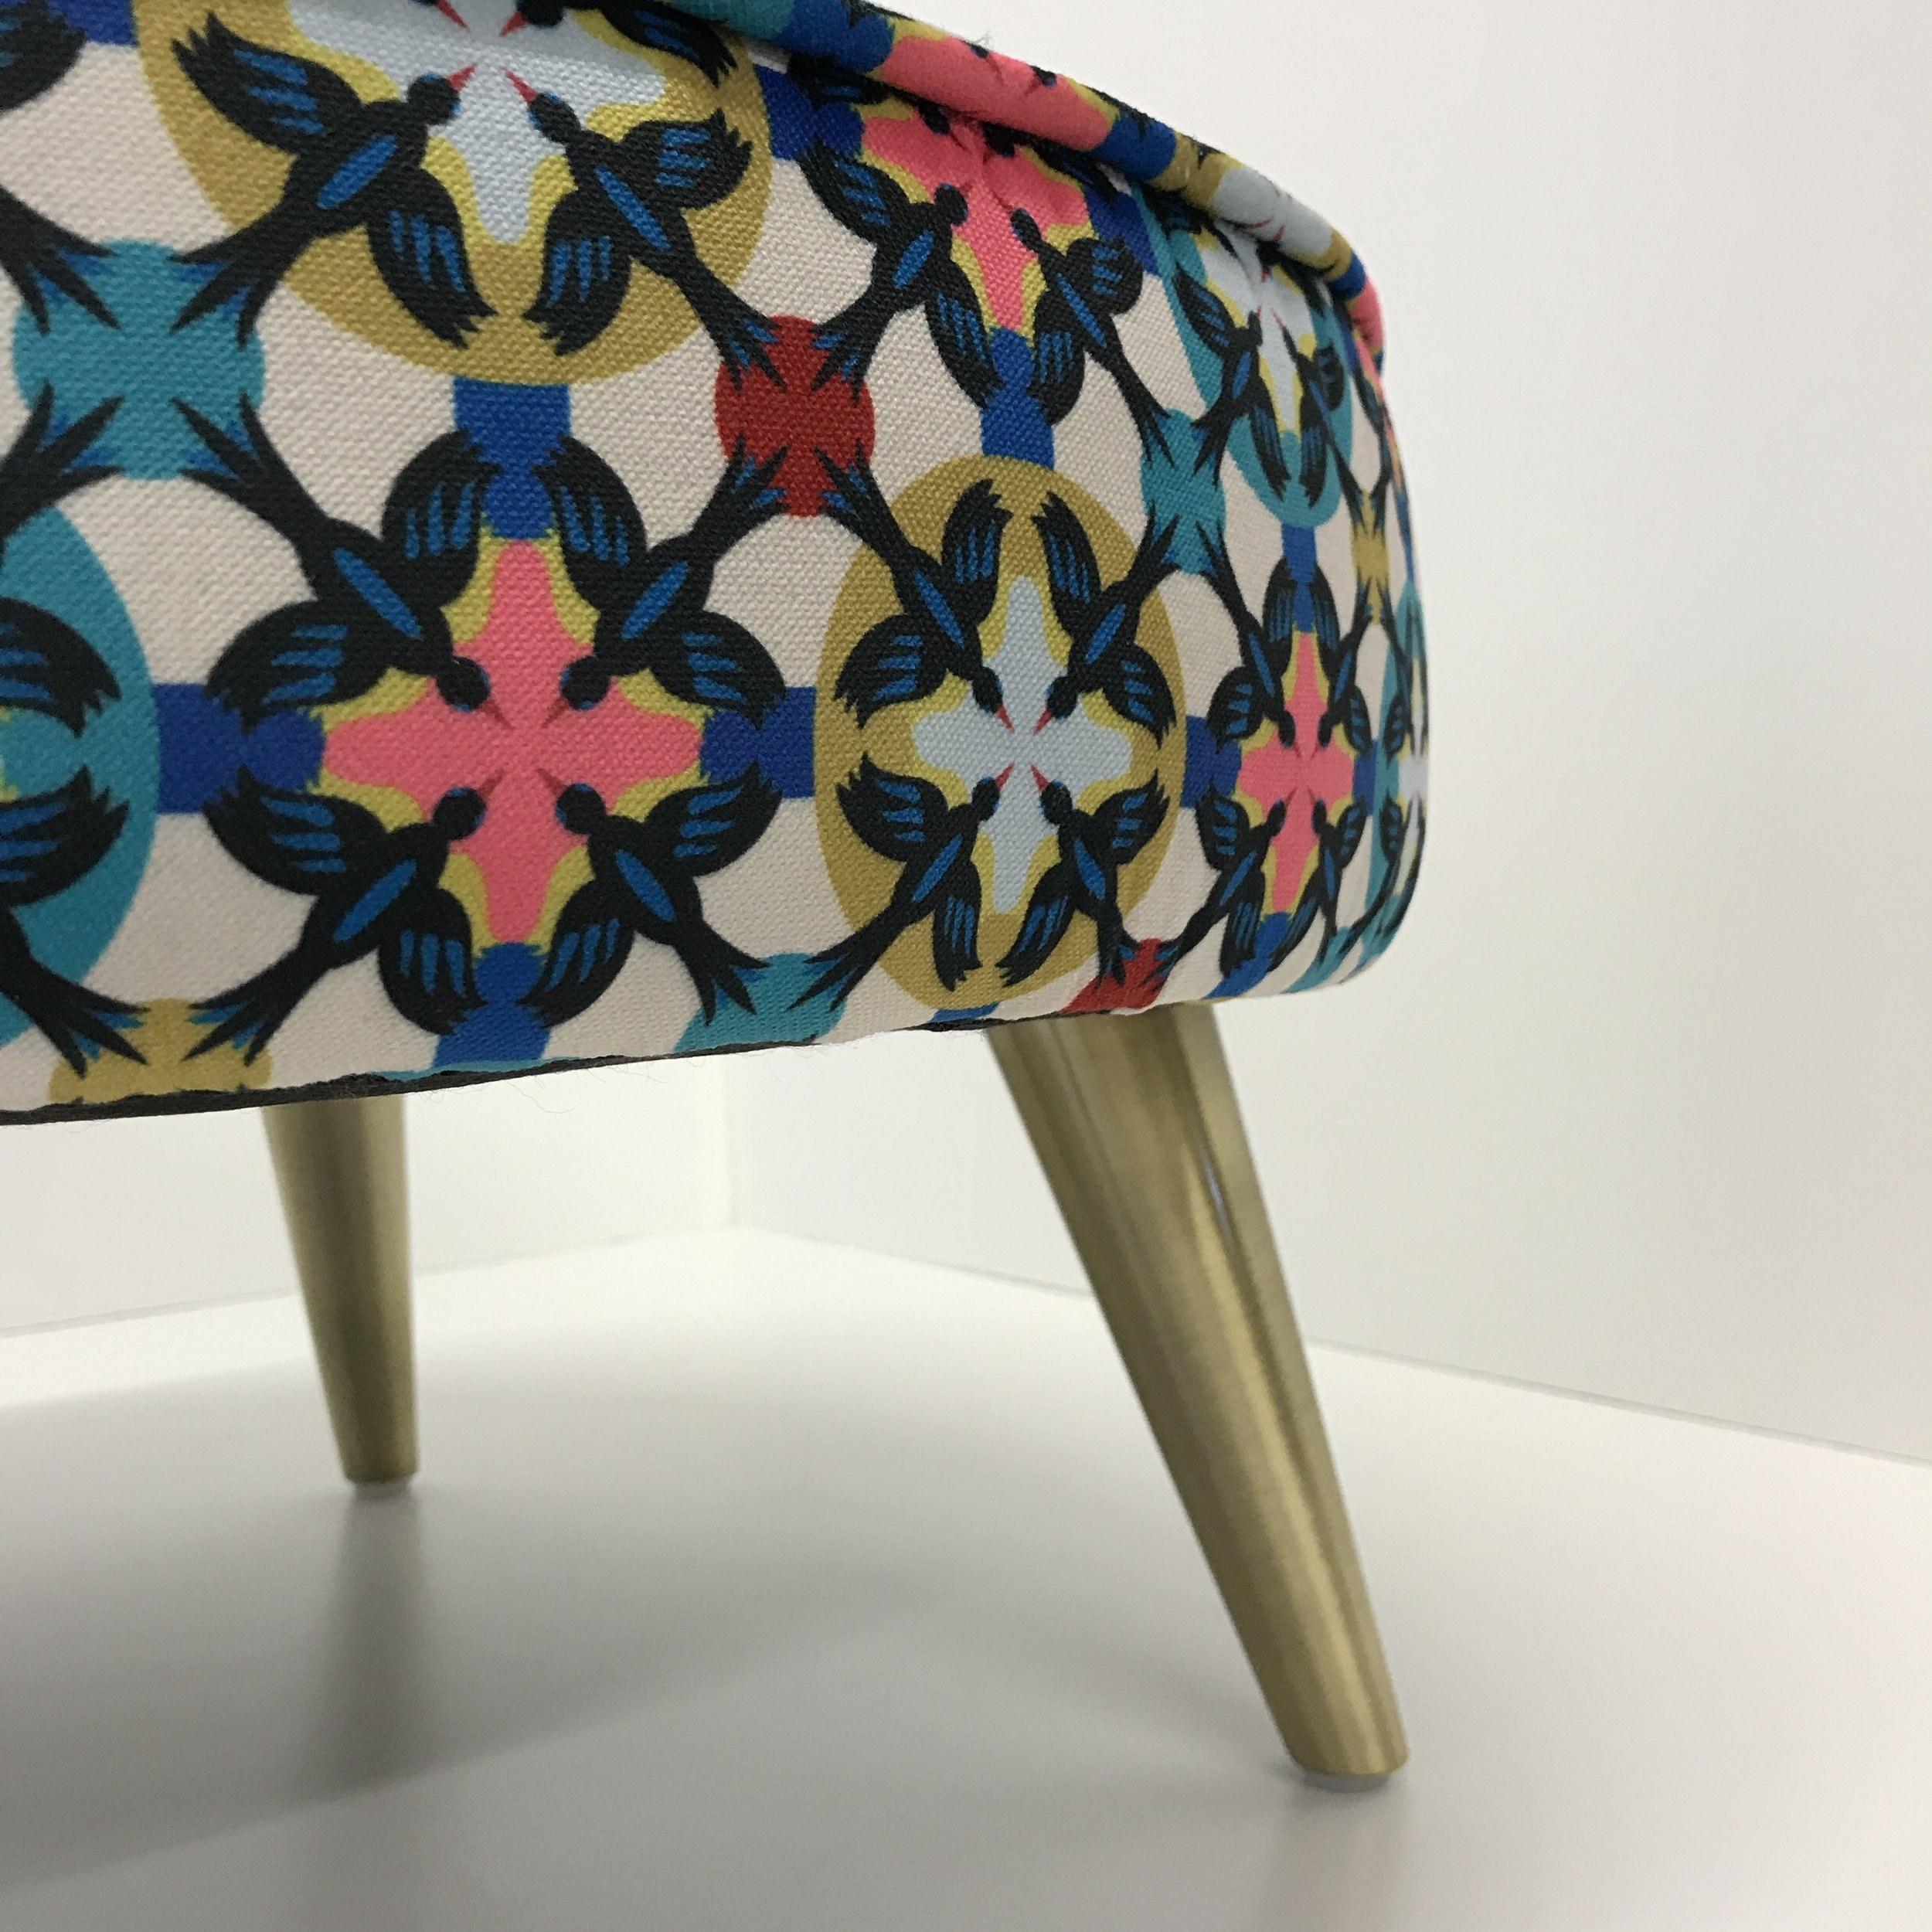 [new]  Patternistas Fabrics & new legs - These new tapered brass legs work well with our new fabrics